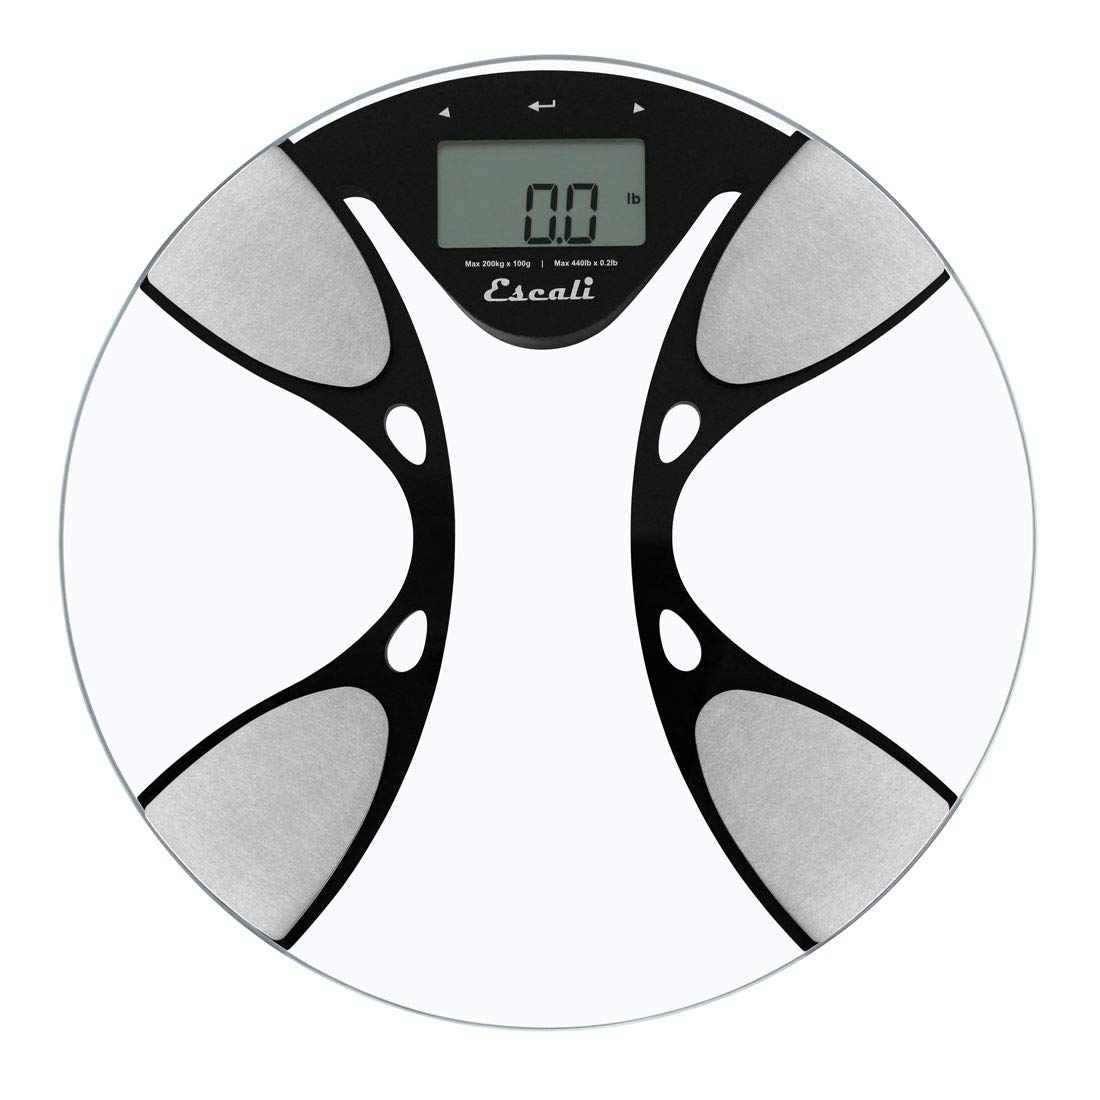 Escali BFBW200 Glass Body Fat/ Body Water Digital Bathroom Scale, 440lb/200 Kg: Amazon.es: Salud y cuidado personal